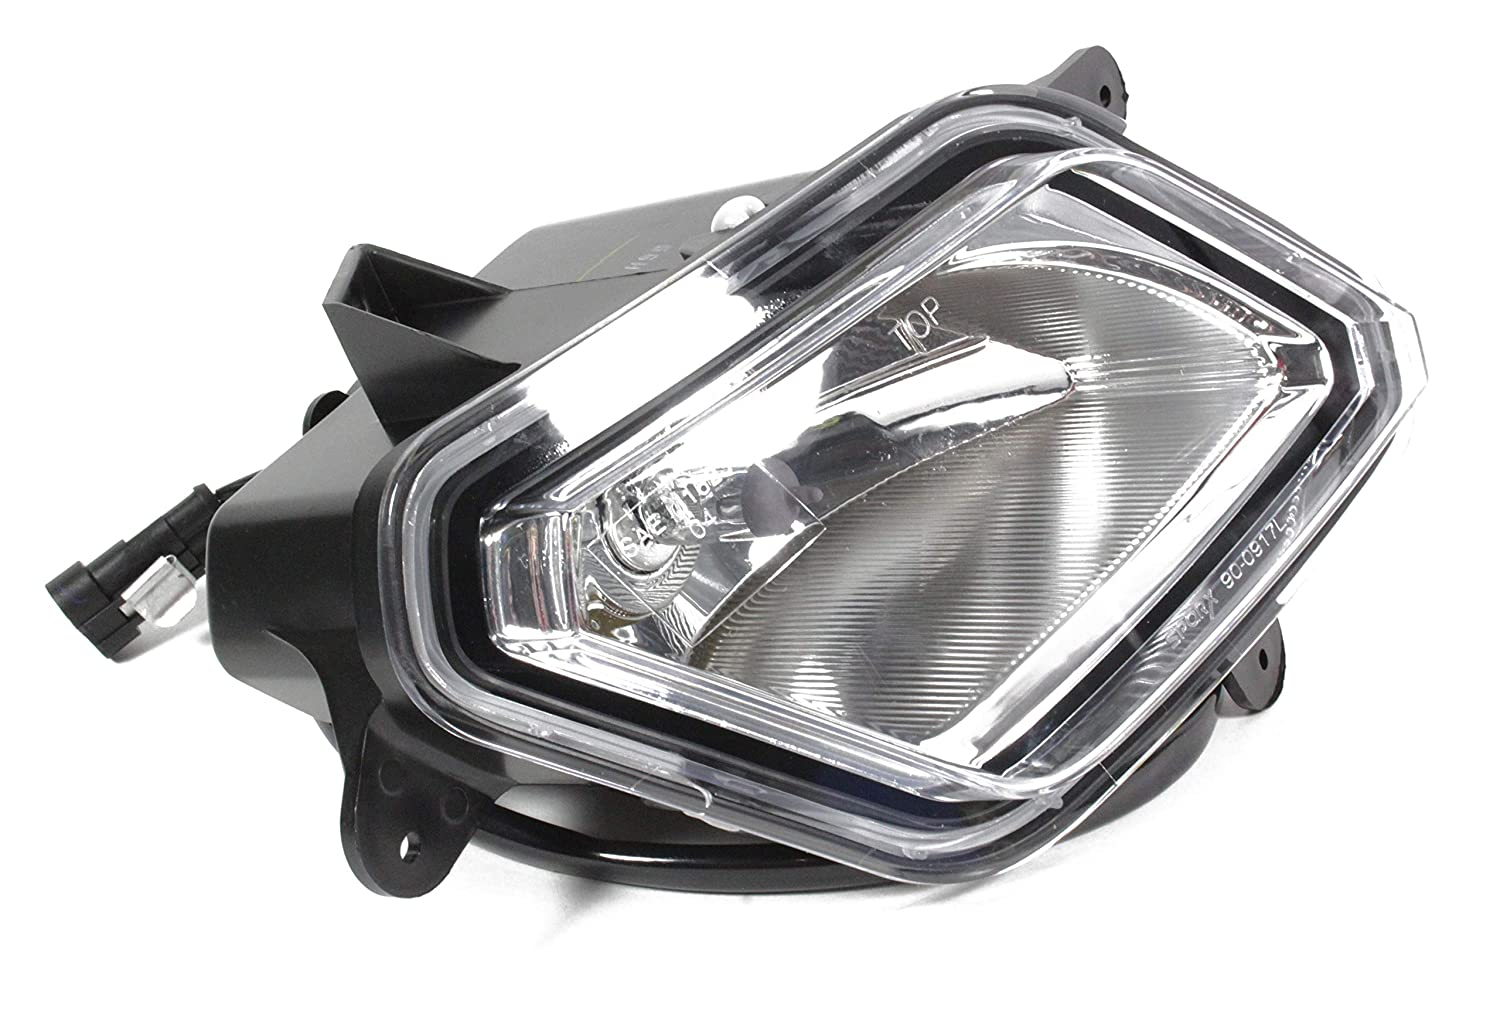 Can-Am 2009-2014 Outlander Max 800R Outlander Max 650 Rh Headlamp Assembly 710001496 New Oem